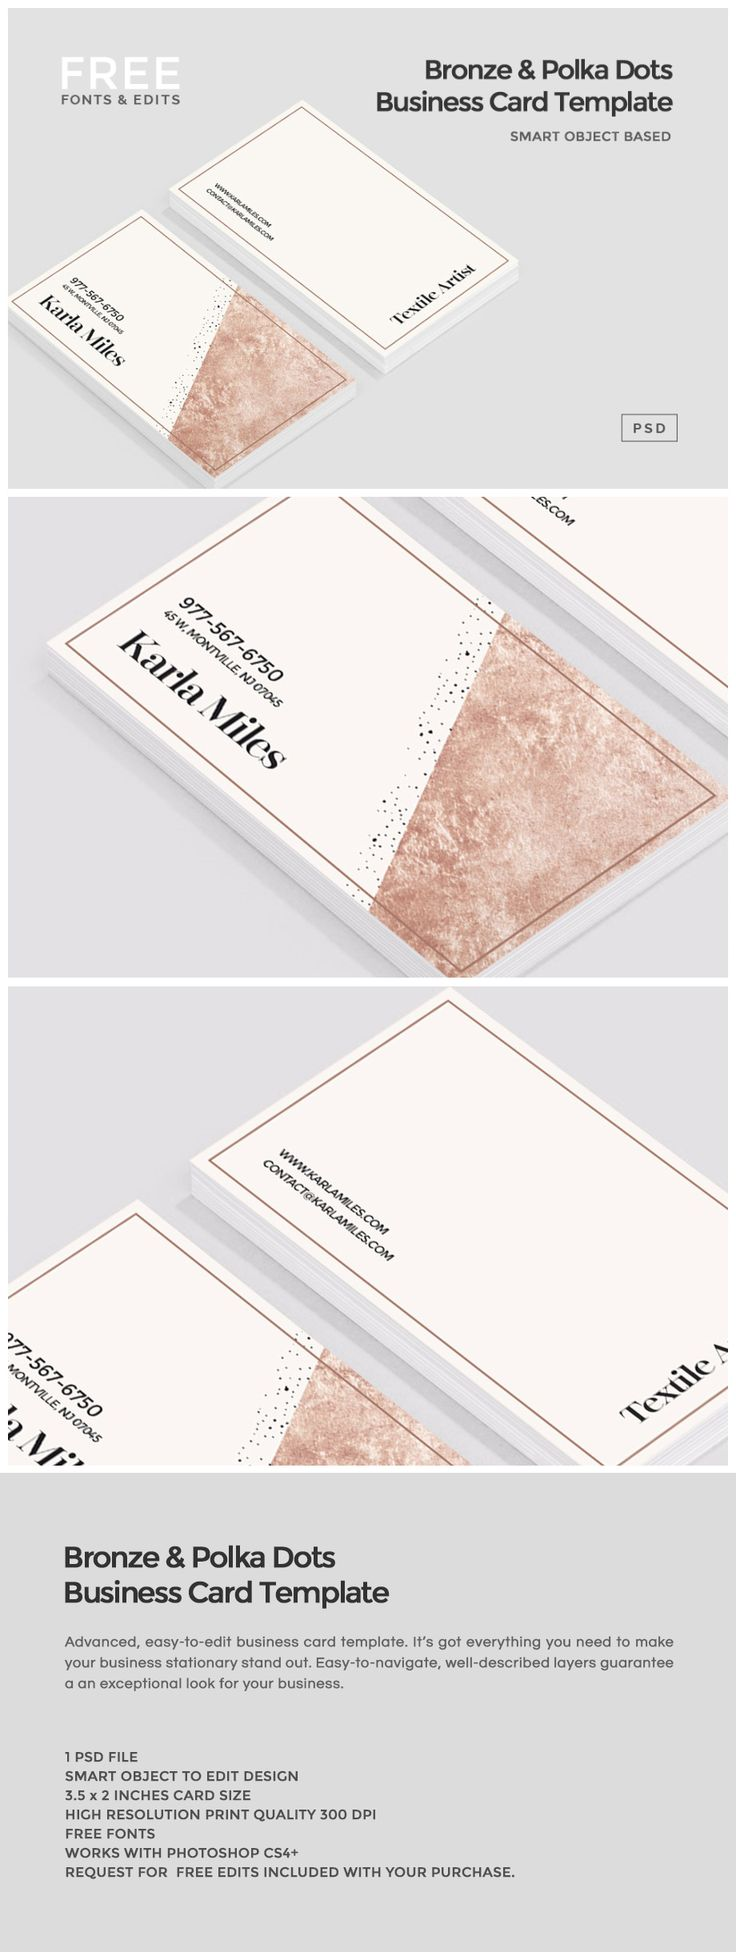 Bronze & Polka Dots Business Card Size: 3.5 x 2 Inches .PSD with 300 DPI resolution. Color and text edits are included in the cost.  #design #graphicdesign #graphicdesigner #logodesign #webdesign #illustration #art via http://83oranges.com